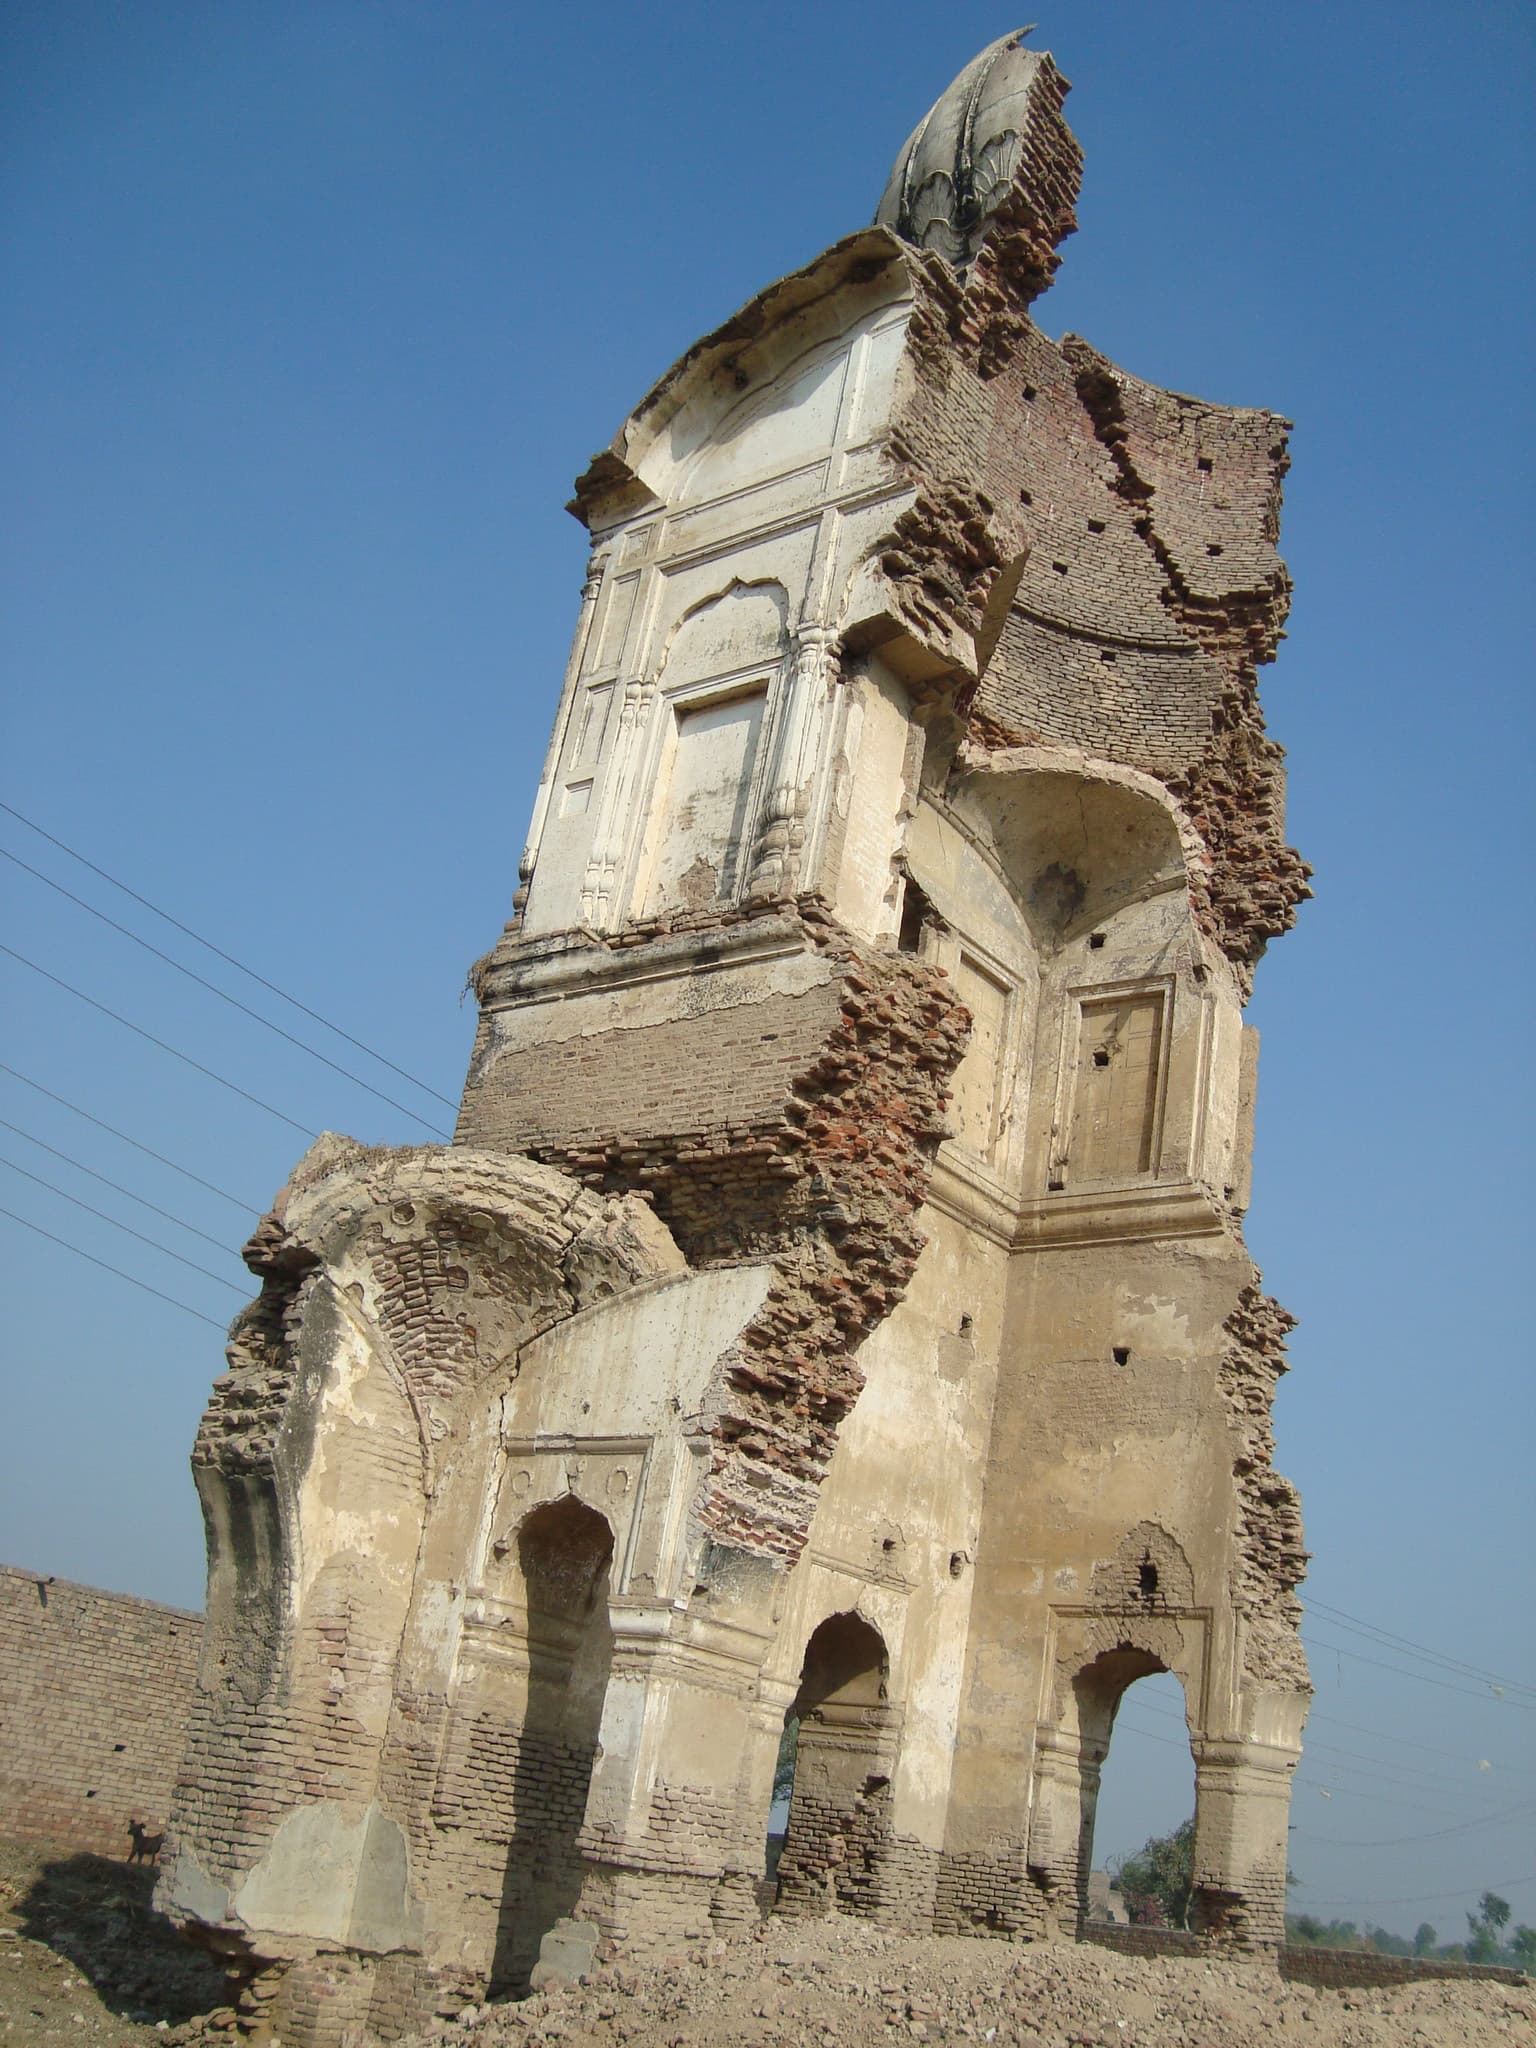 The shrine of Piro Piraman and Ghulab Das. They wanted to be buried together, like the legendary lovers Heer-Ranjha.